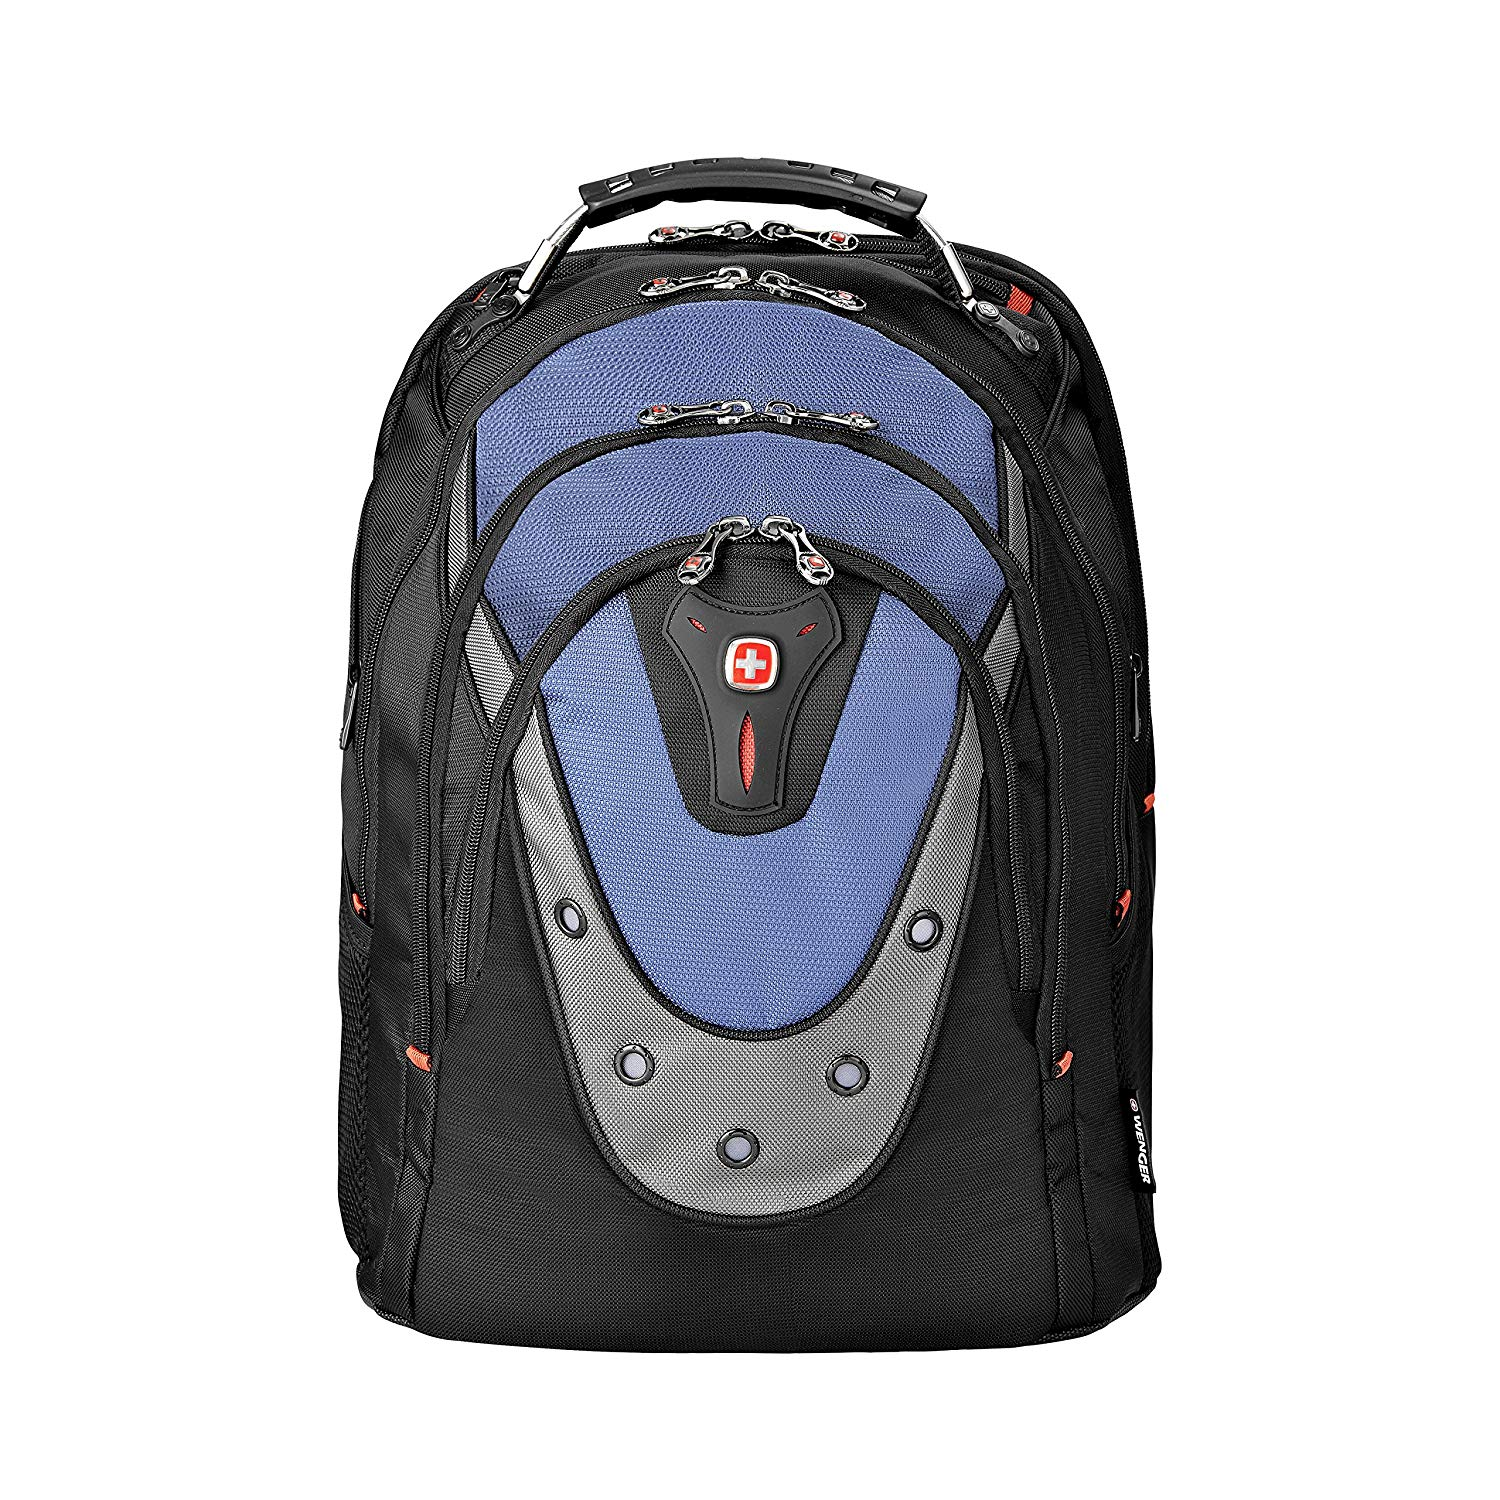 c261e5f91bf4 Best laptop backpacks in the UK  These are the one reviewers love